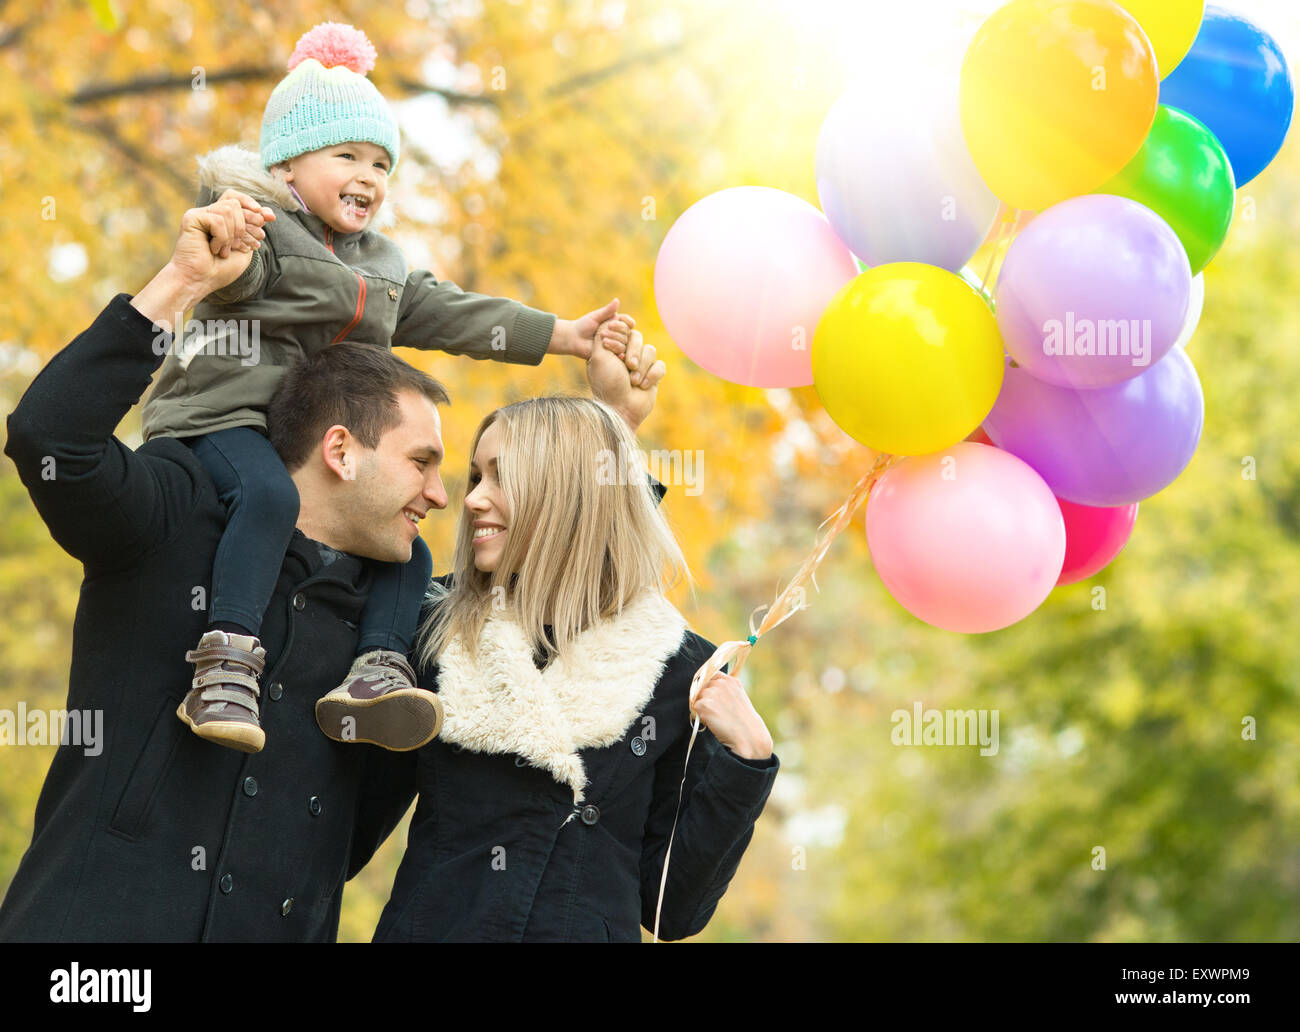 happy family with little child and air-balloons, outing in autumn park - Stock Image